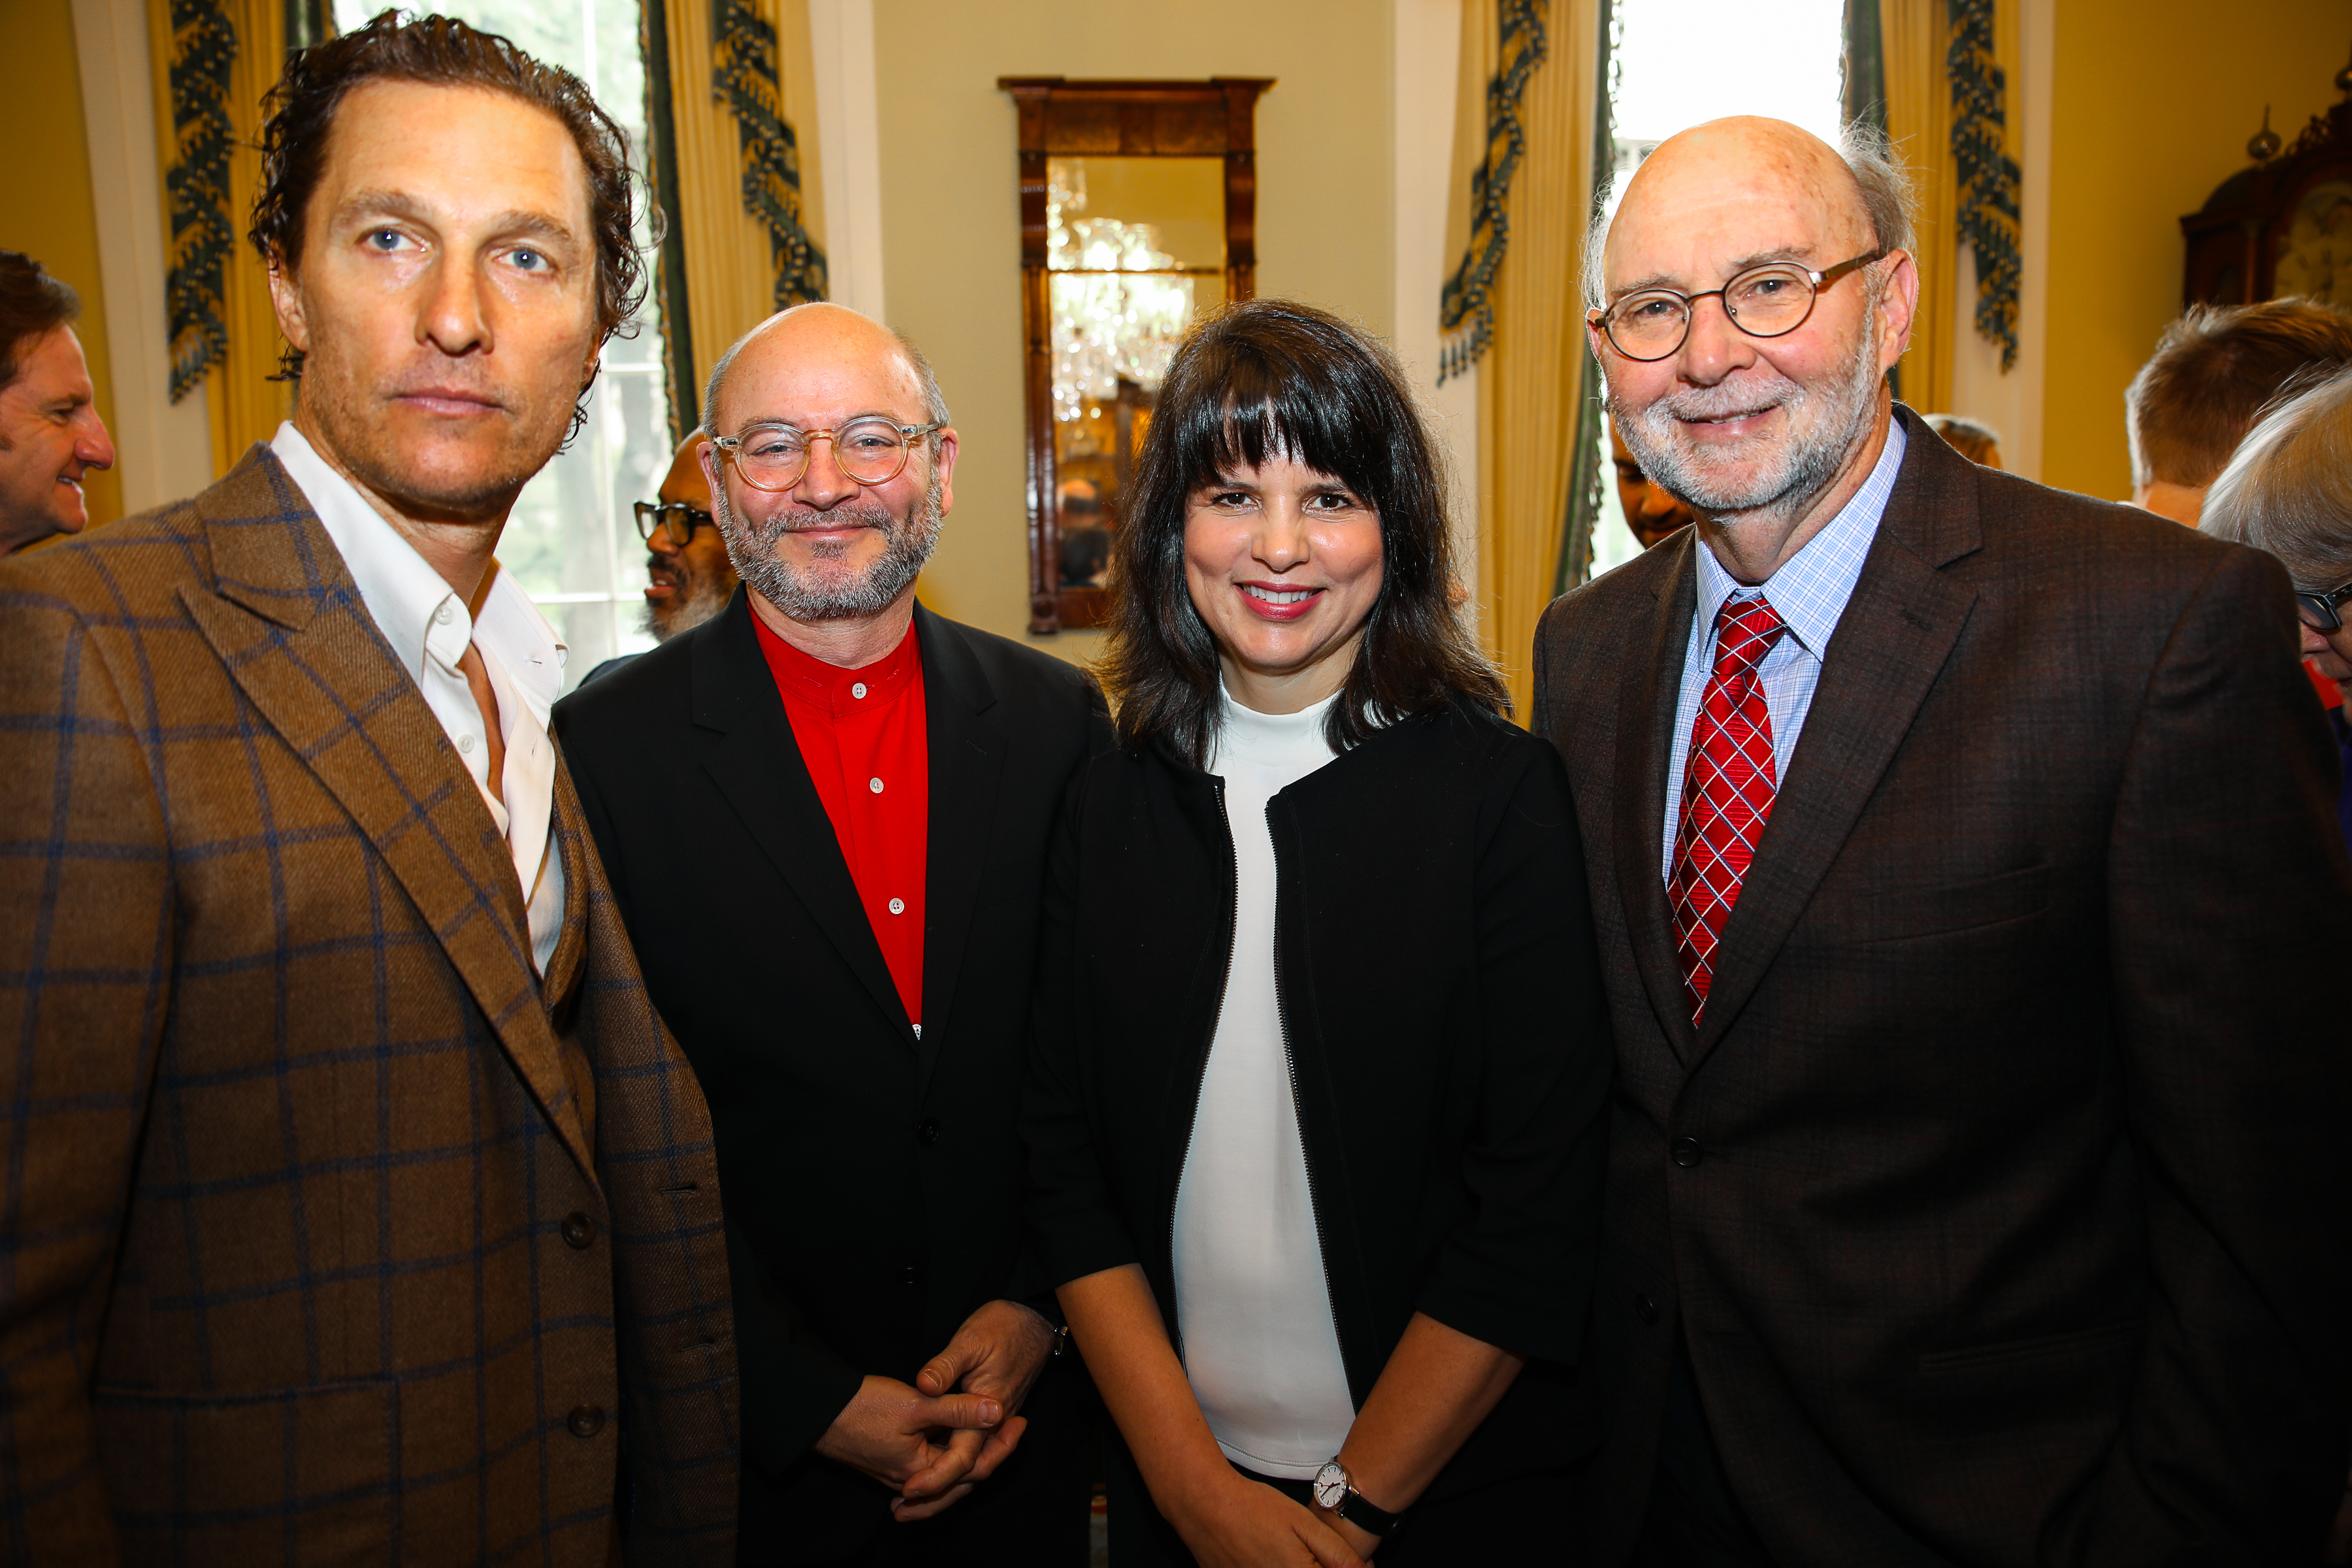 Alumni Honored at Governor's Mansion